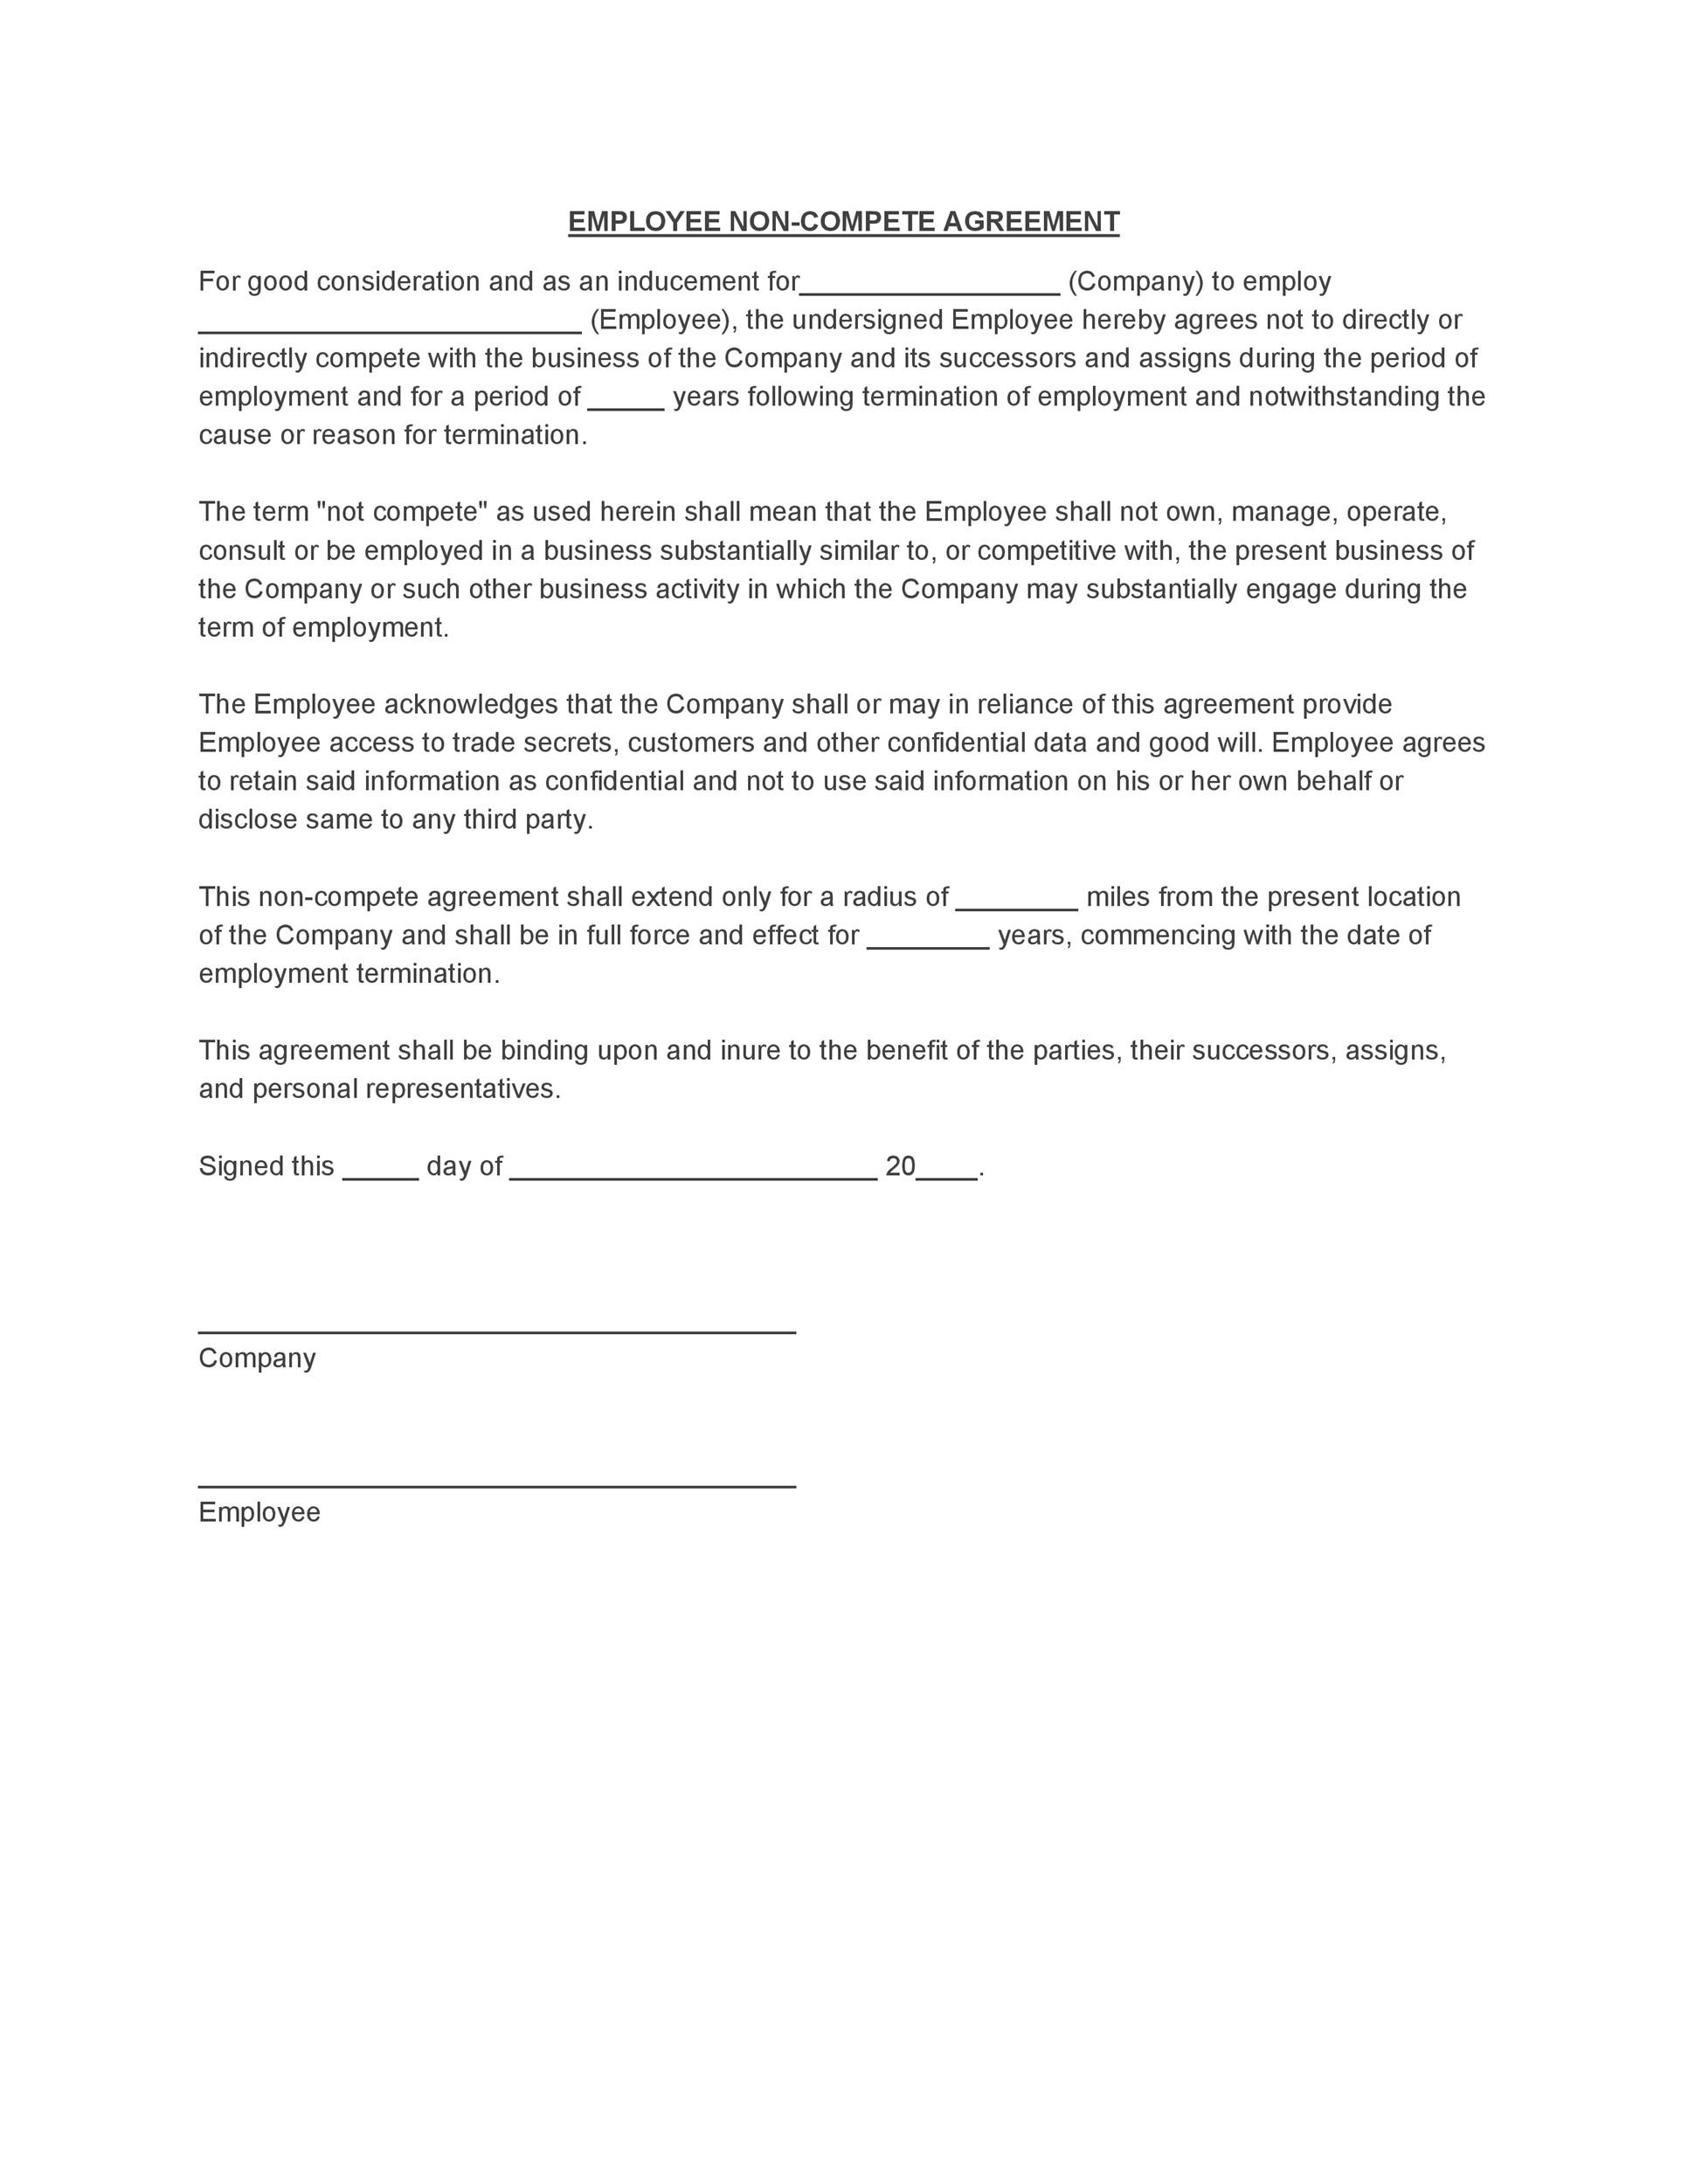 Personal Confidentiality Agreements Confidentiality Agreement - data confidentiality agreement